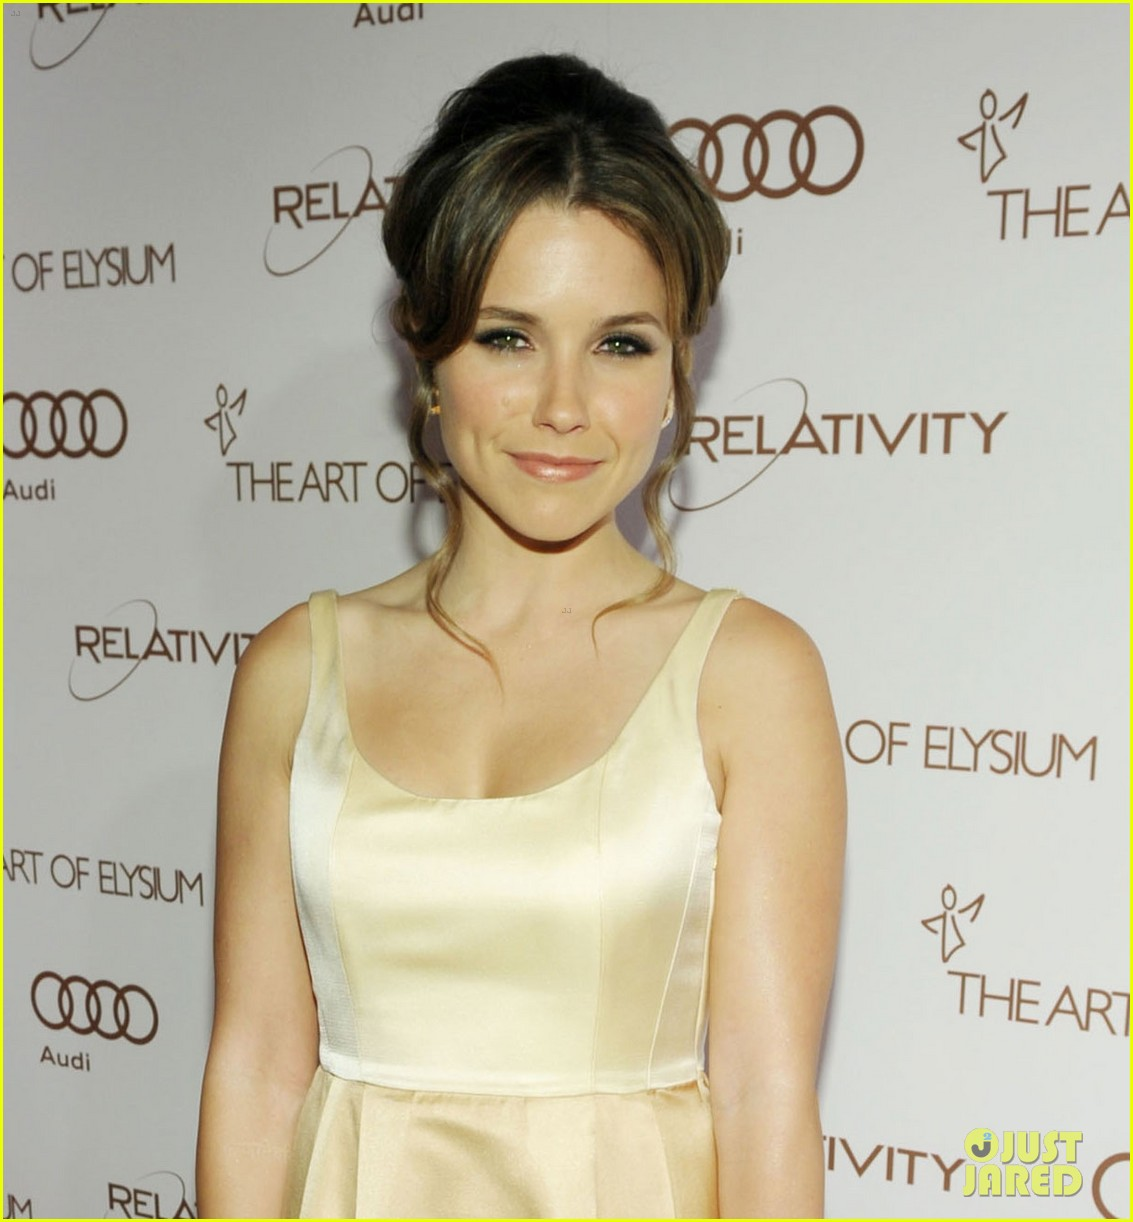 sophia bush art of elysium 2012 05